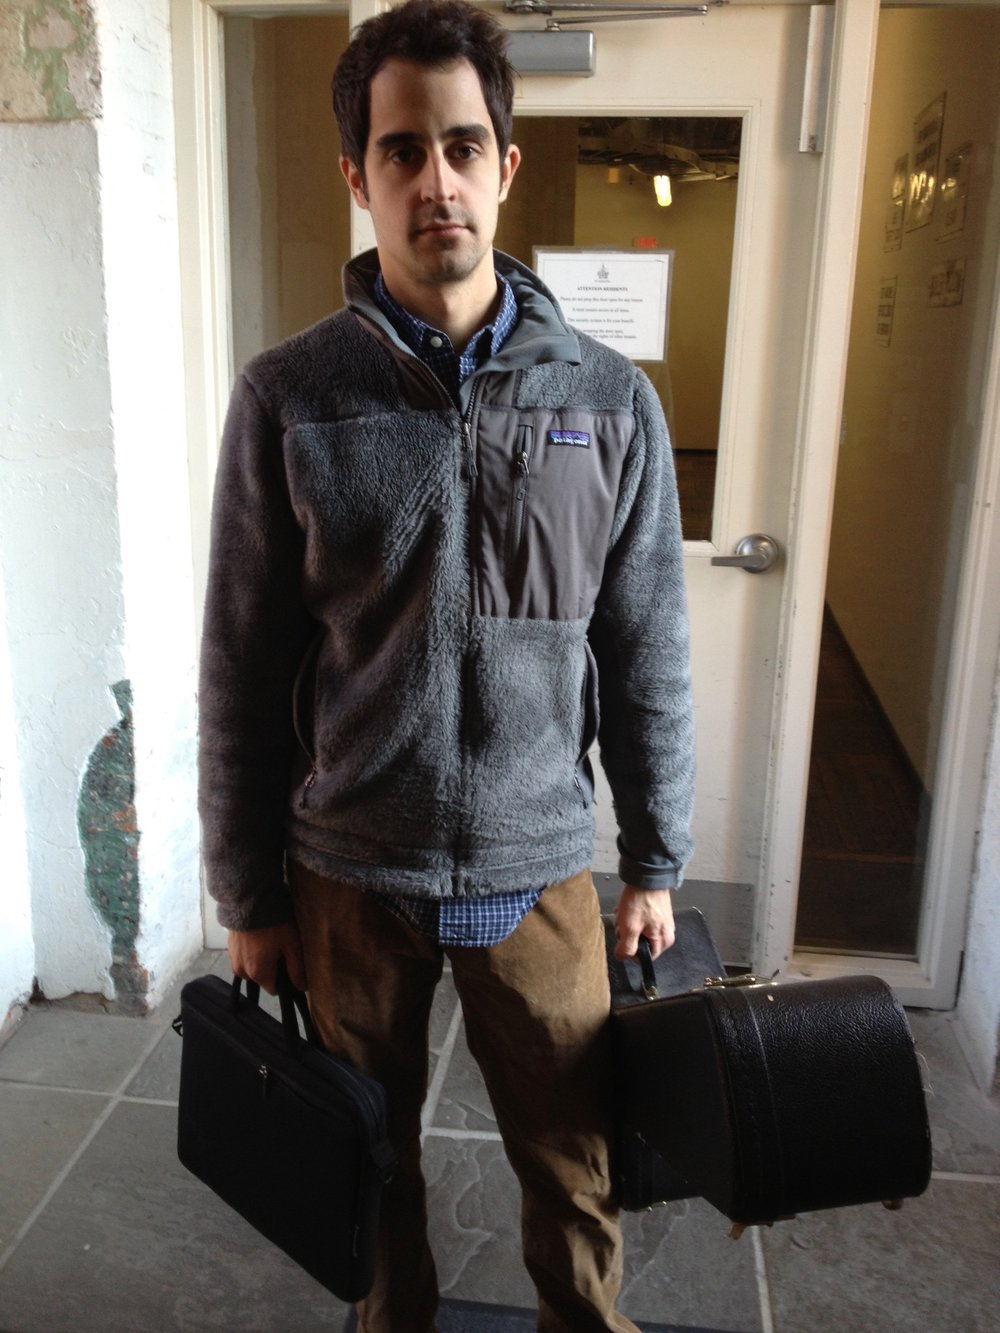 Augusta 2012: Hey guys, I brought my music stuff! Oh wait, shit - I have to go be a law clerk?